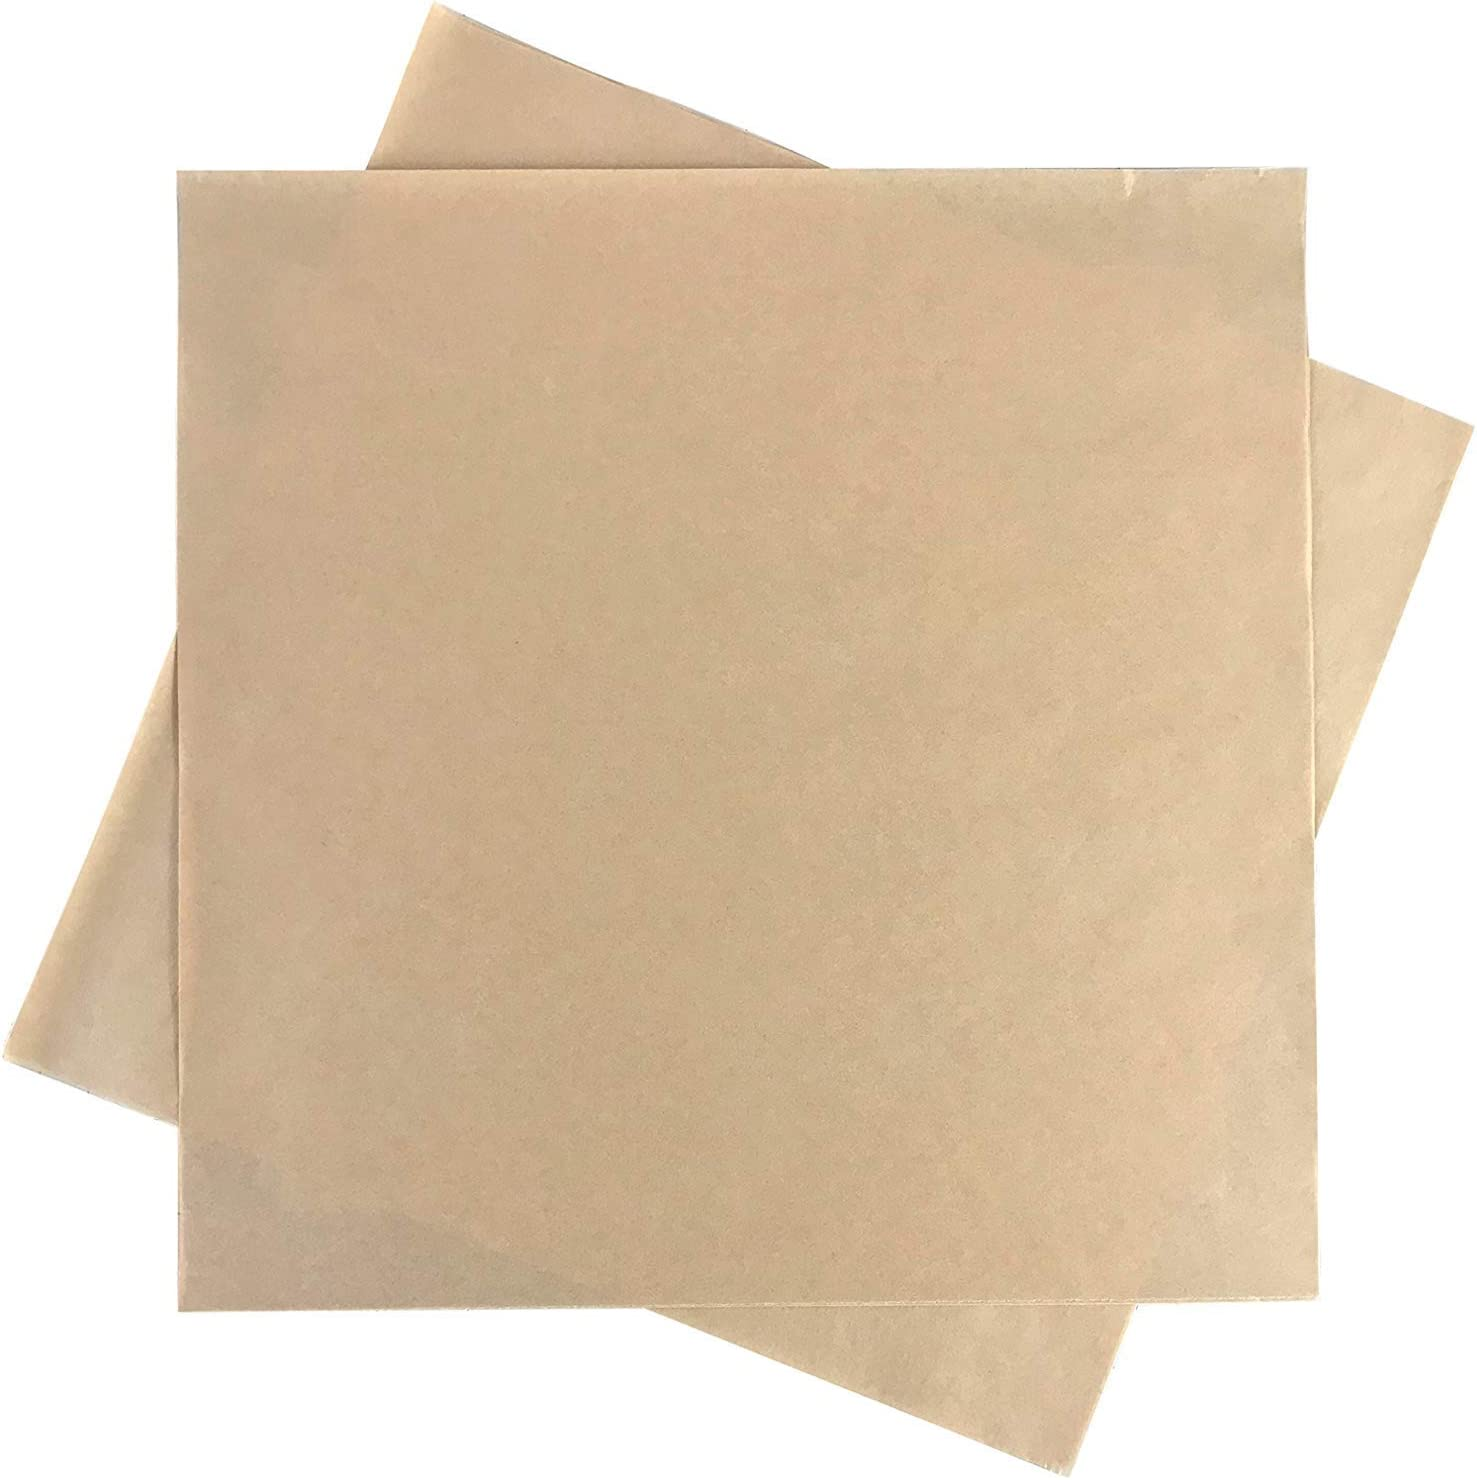 Brown Natural Kraft Paper Wrap Natural Kraft 12 x 12 inch Deli Paper Food Basket Liners - Great for Wrapping Sandwiches (50)